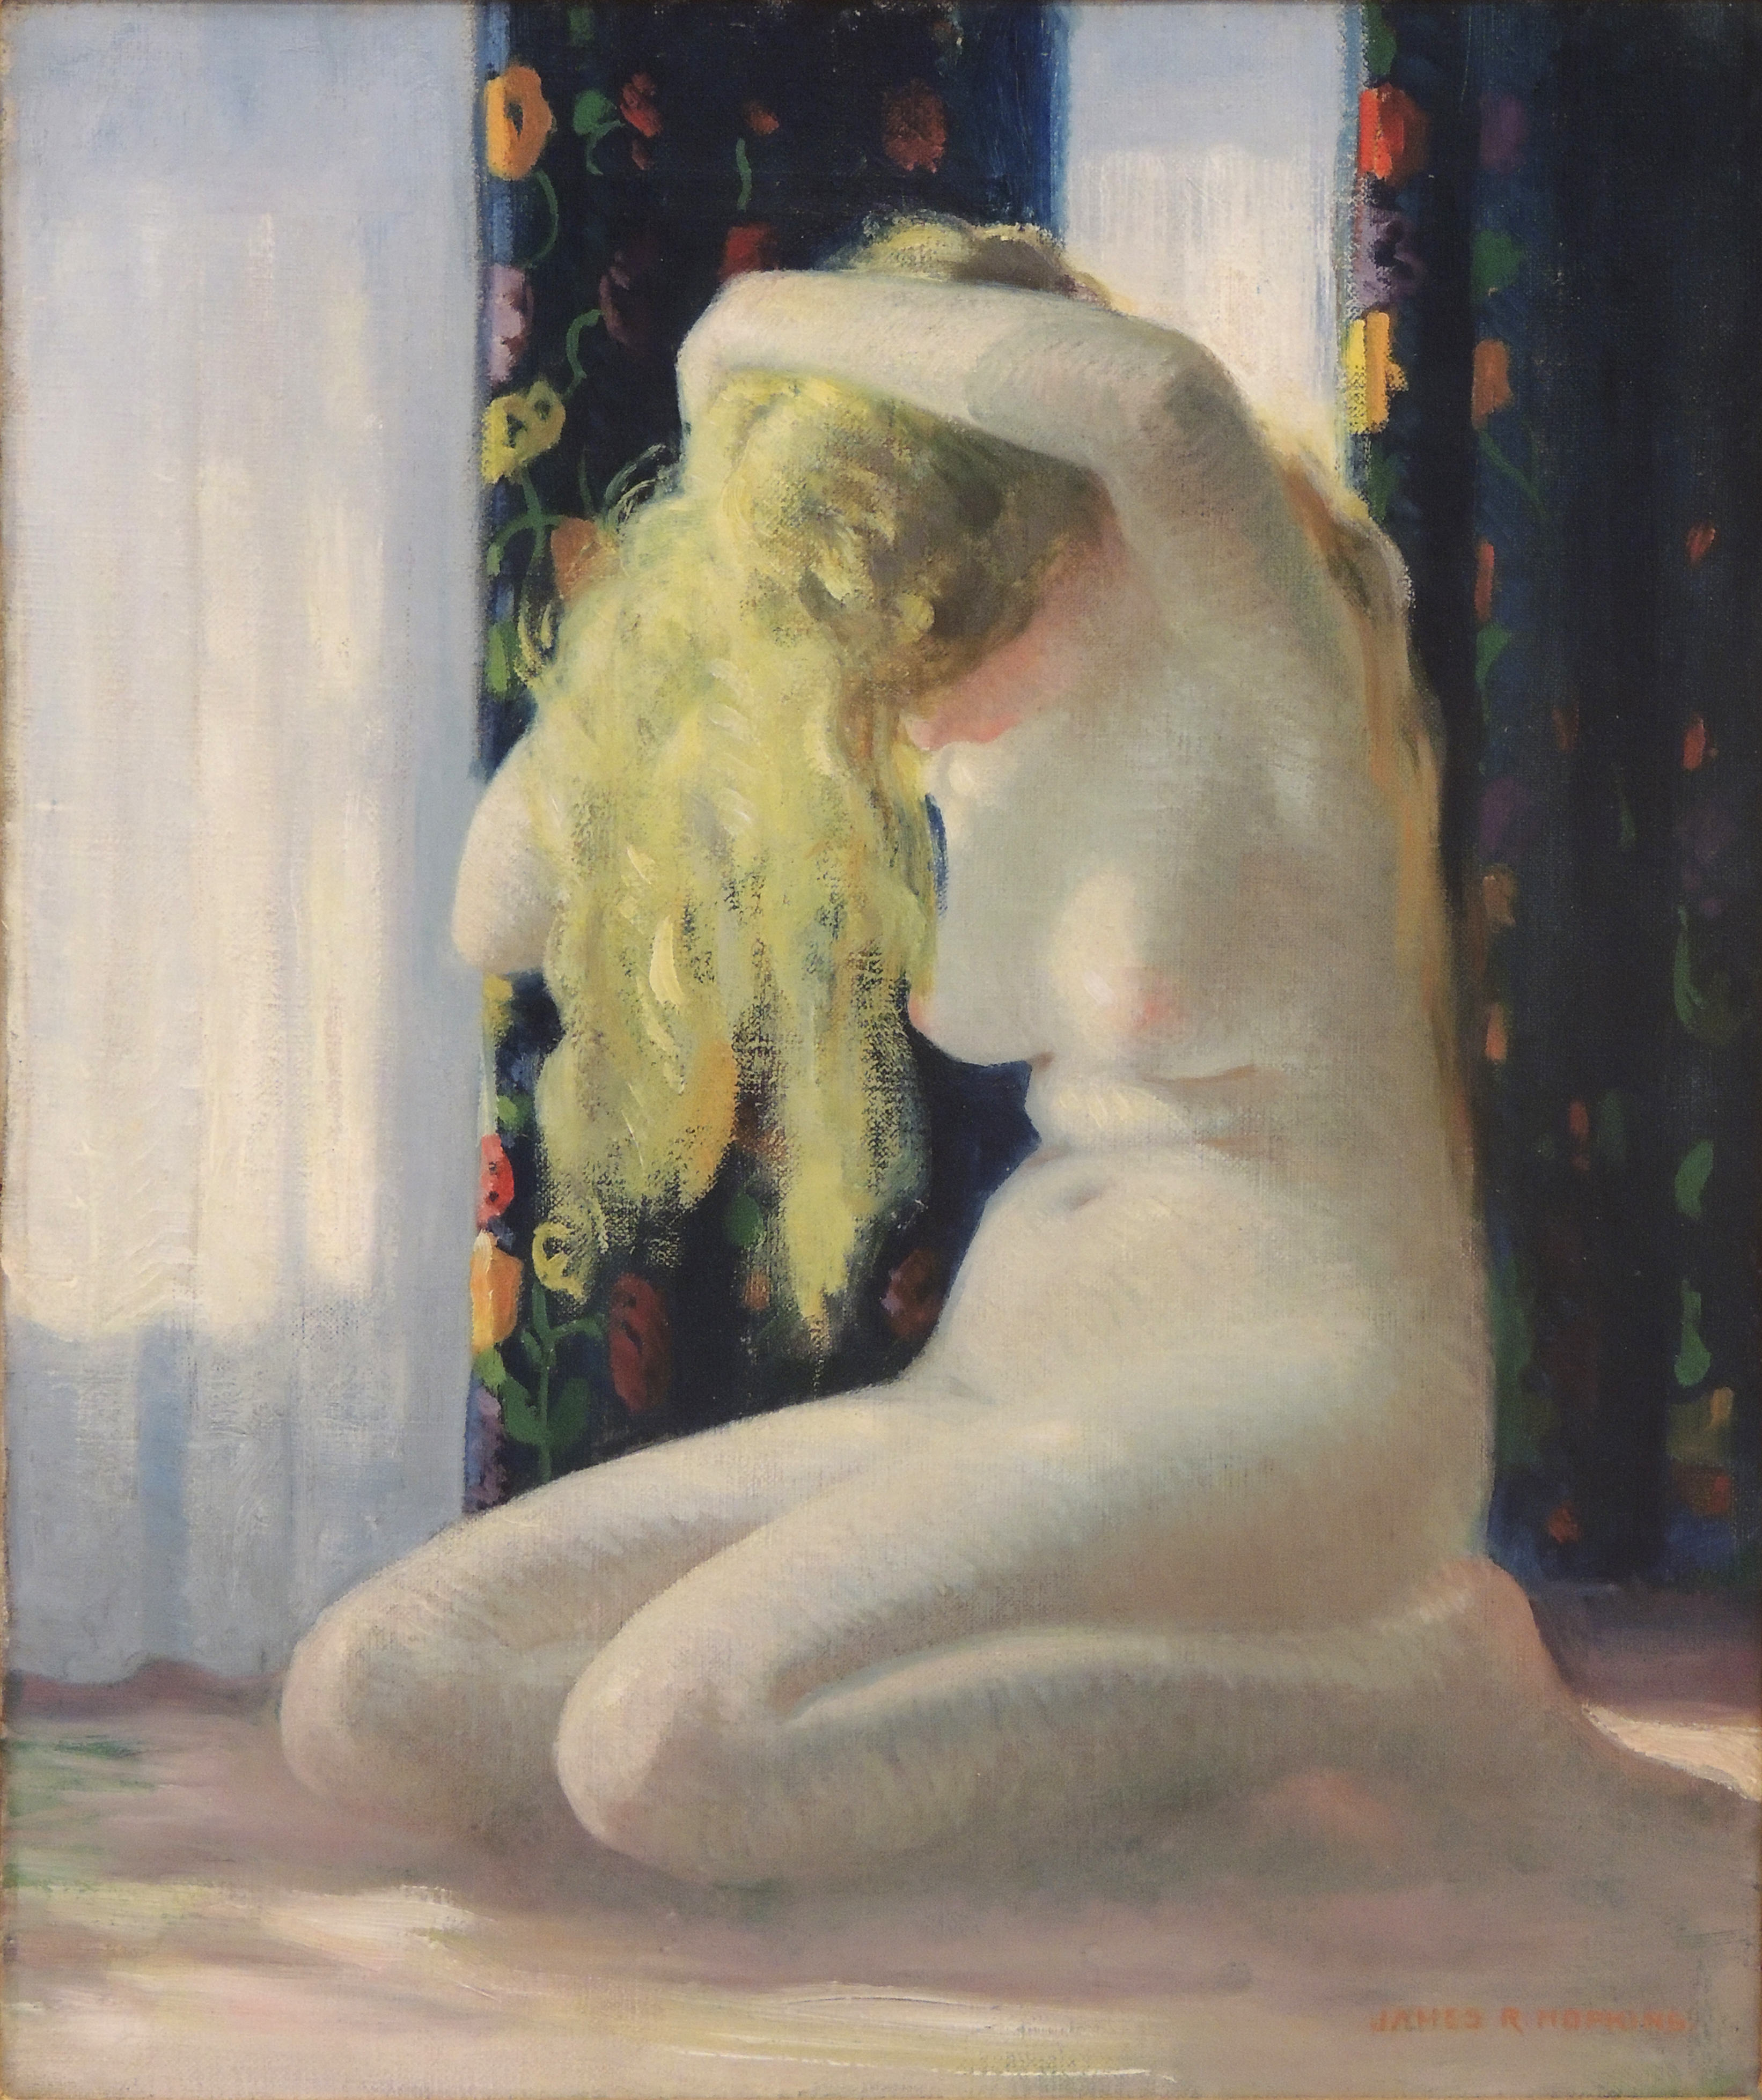 James R. Hopkins | GOLDEN TRESSES | oil on canvas | 18 x 15"